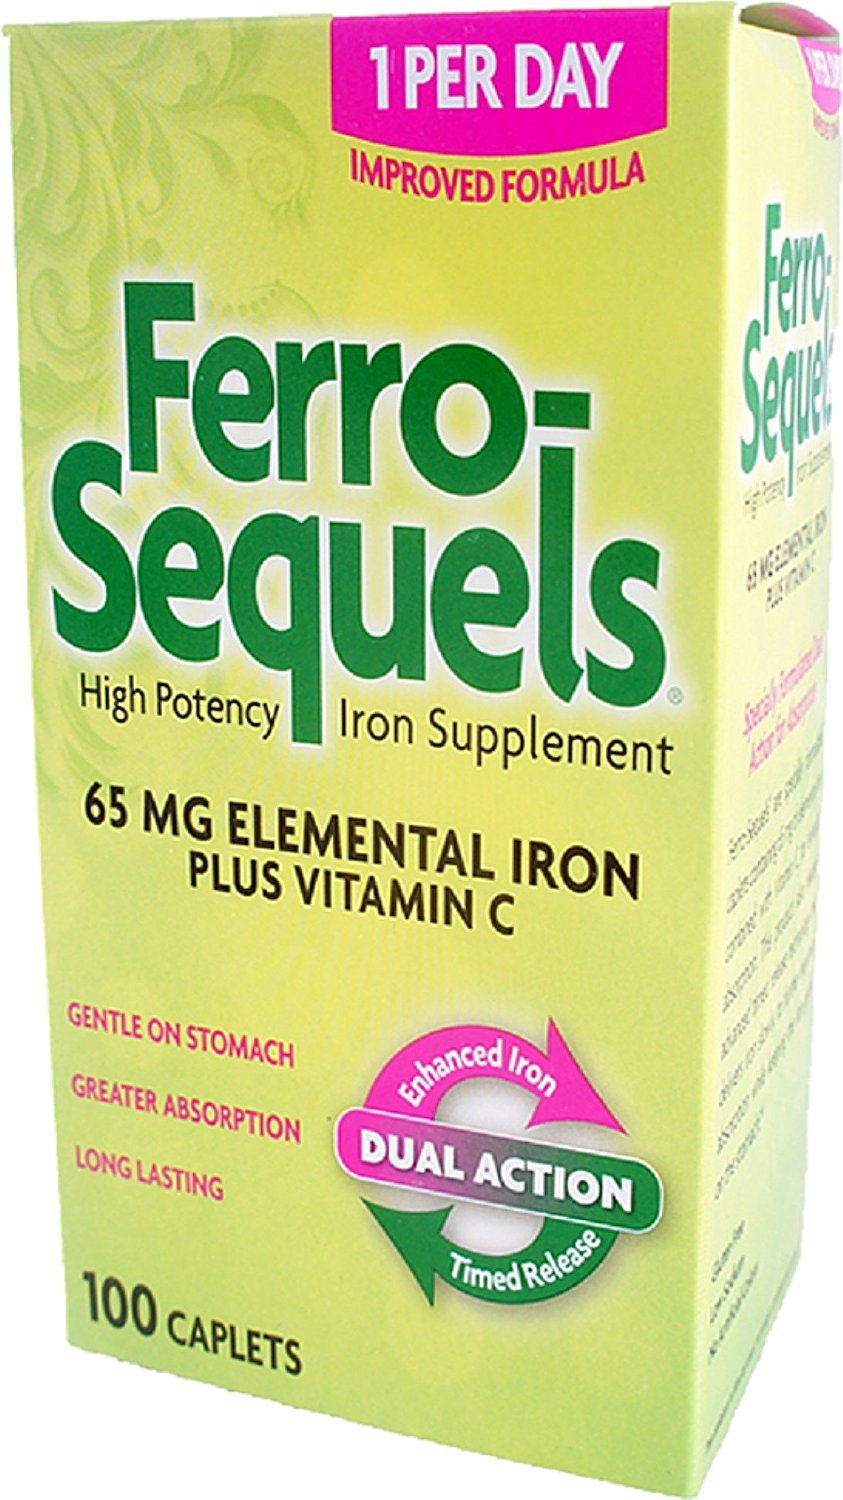 Ferro-Sequels Tablets 65 Mg 100 Tablets (Pack of 8)